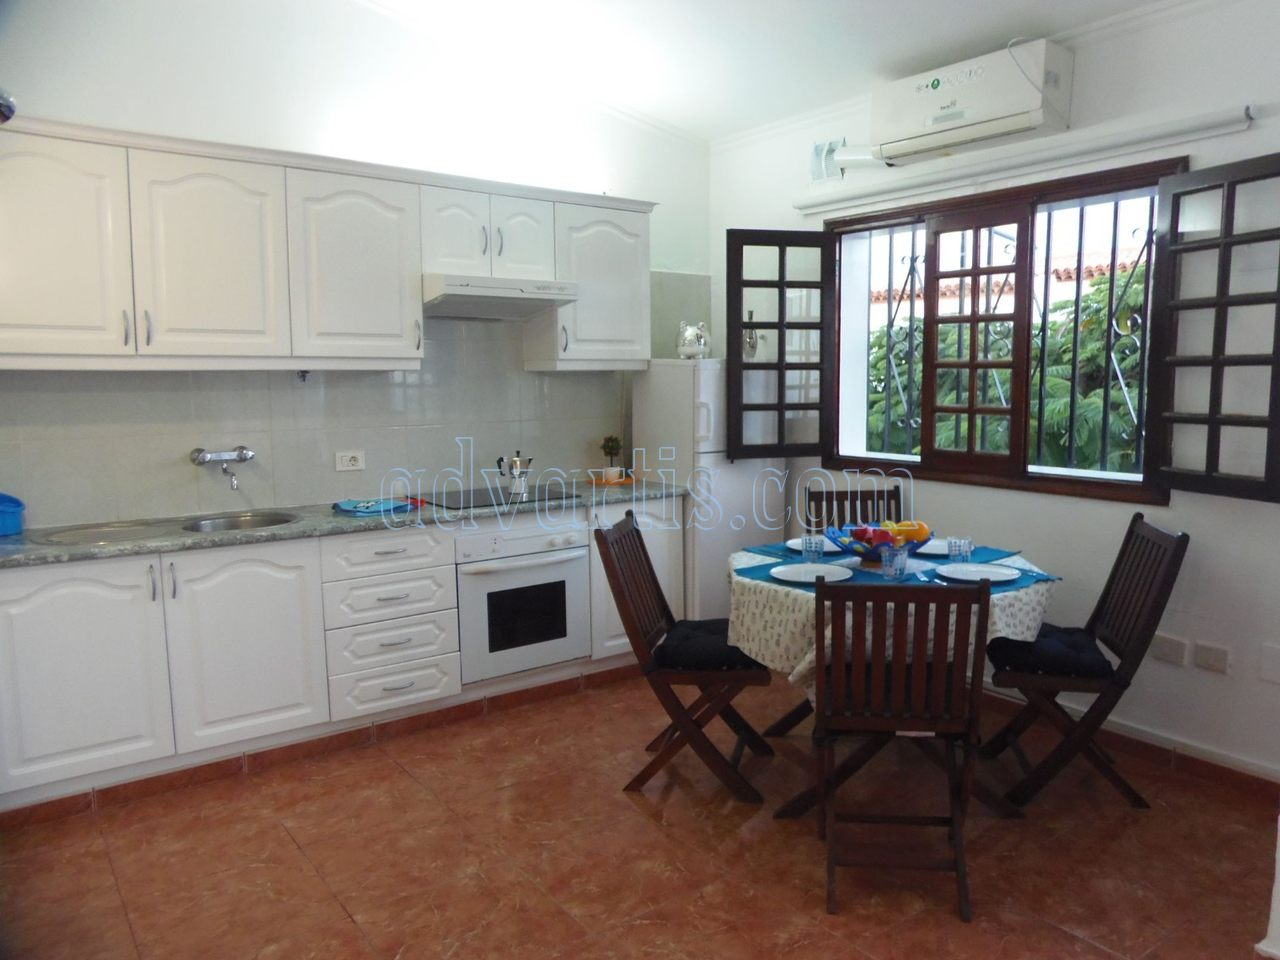 1 bedroom apartment for sale in Costa Del Silencio, Tenerife €128.000